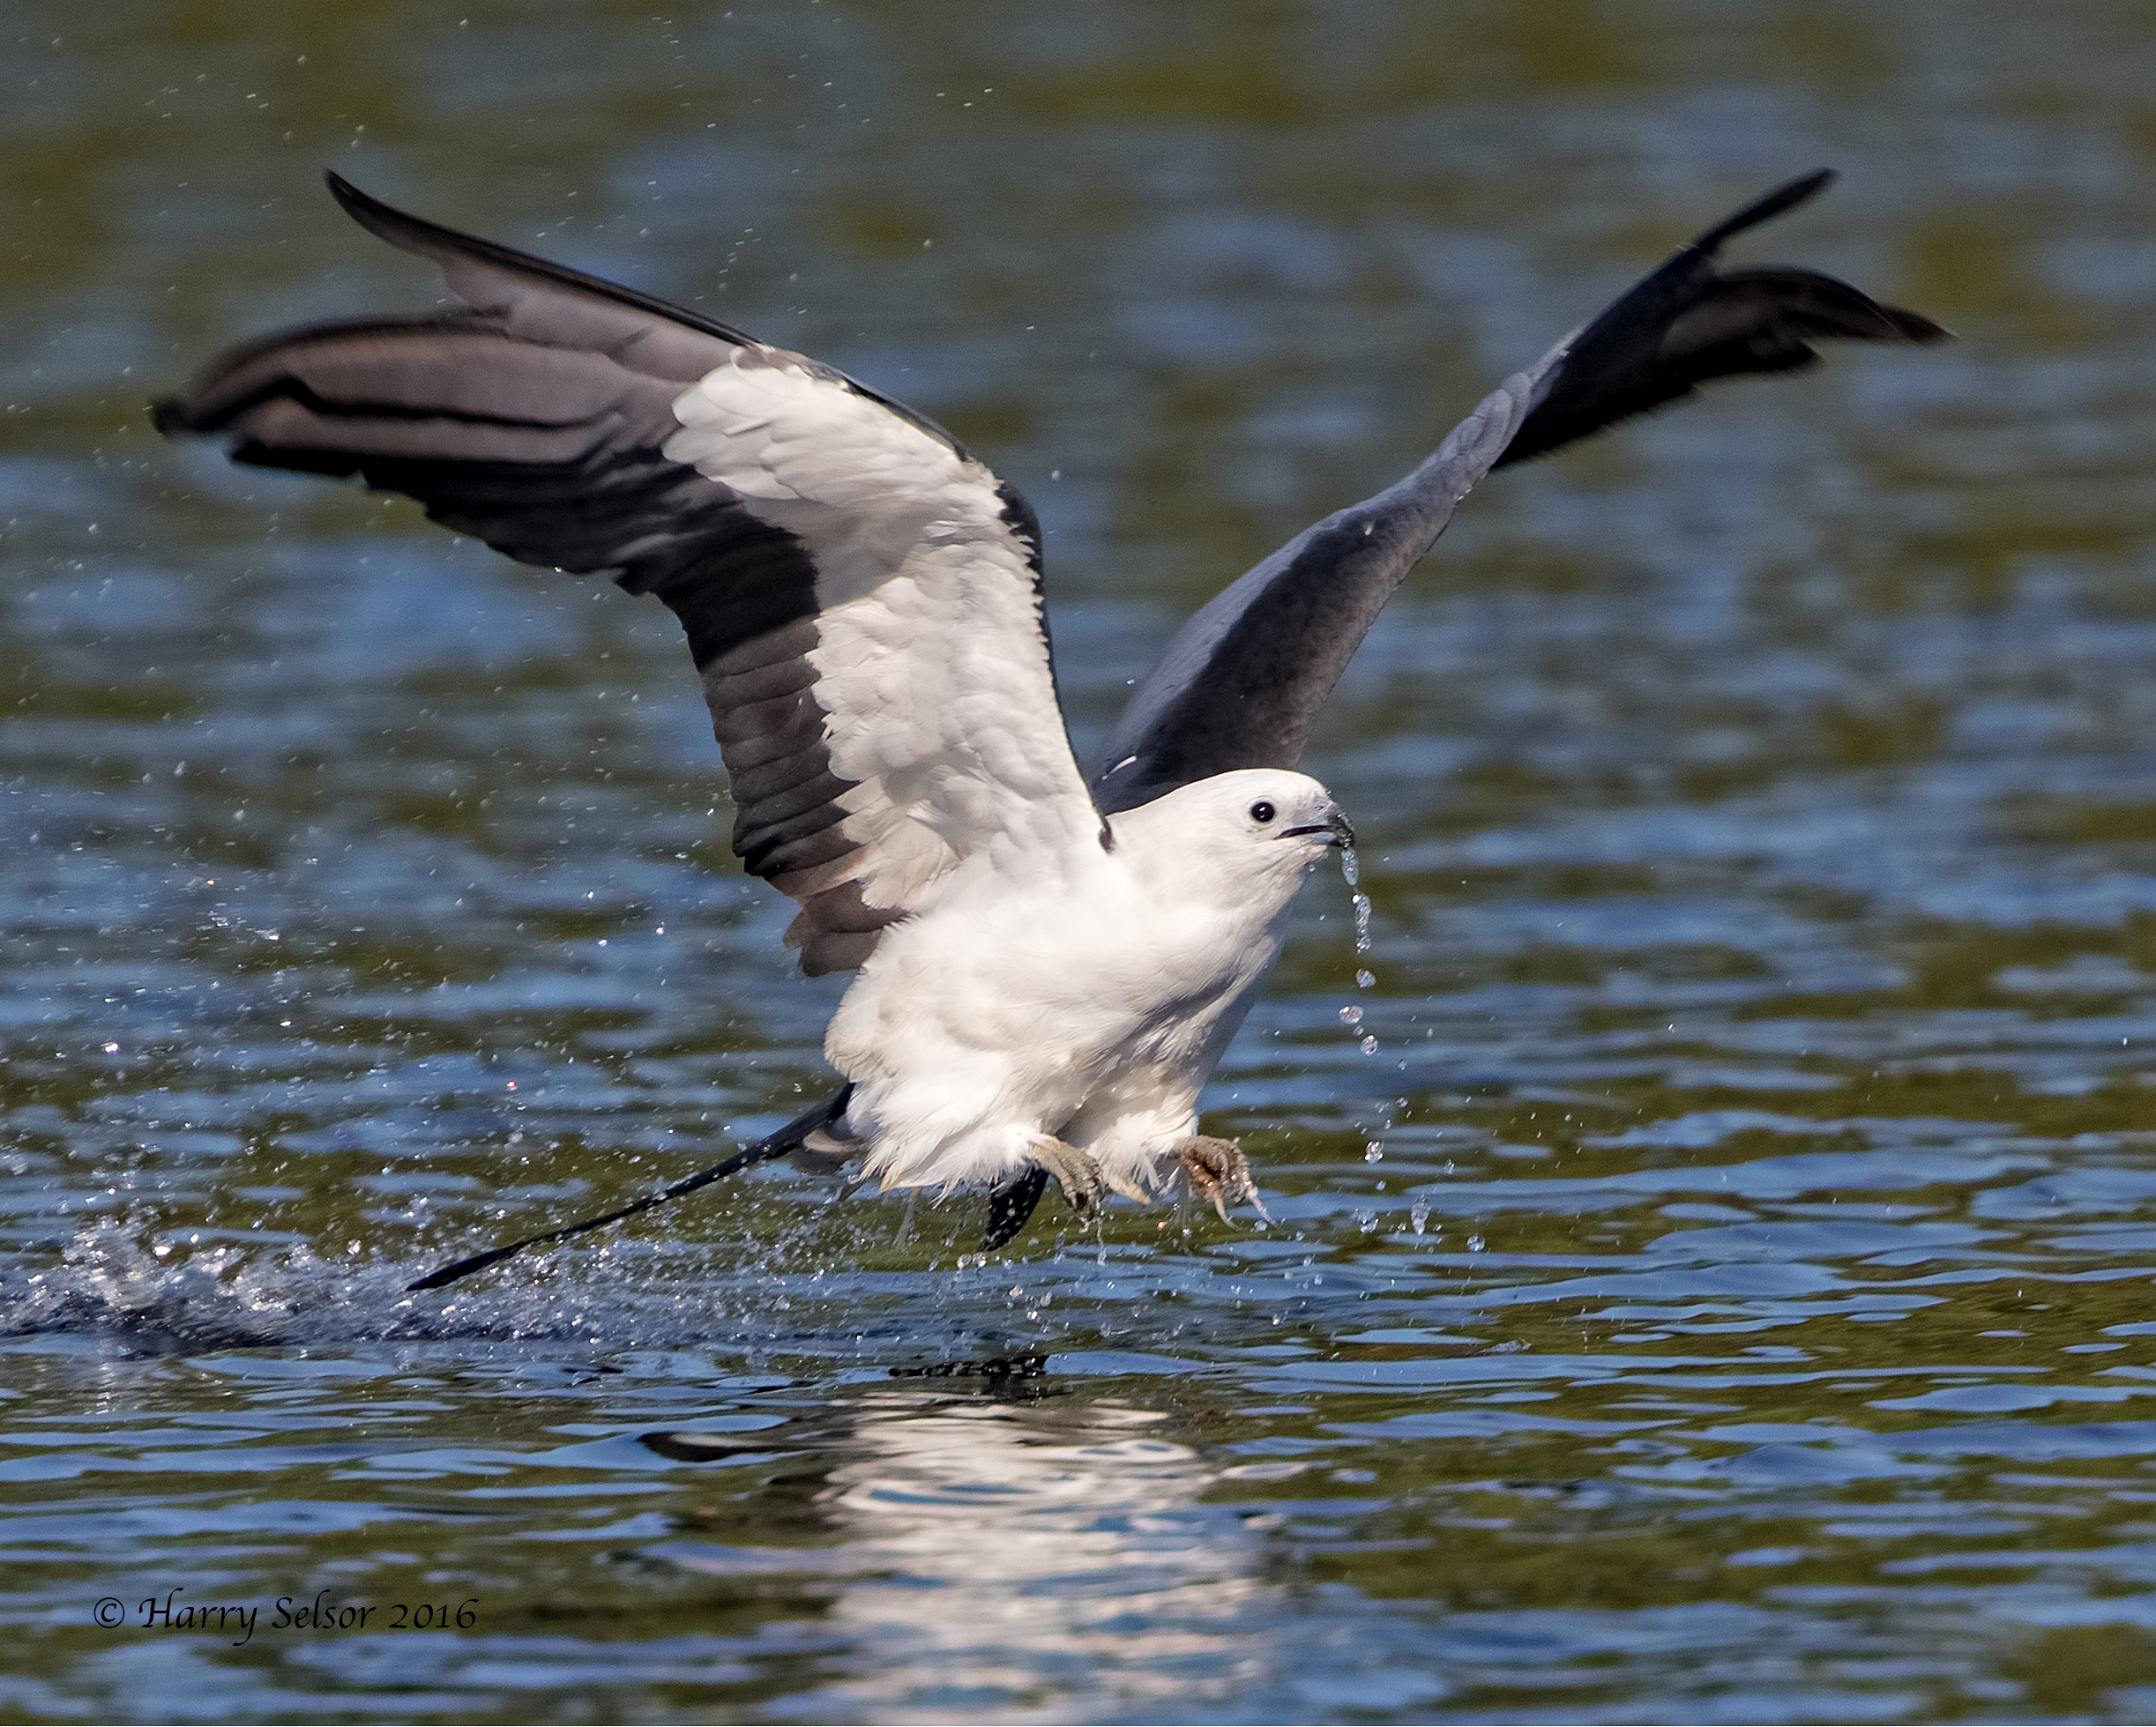 The Swallow-tailed Kites also take this opportunity to give the tailfeathers a quick wash while getting a drink..